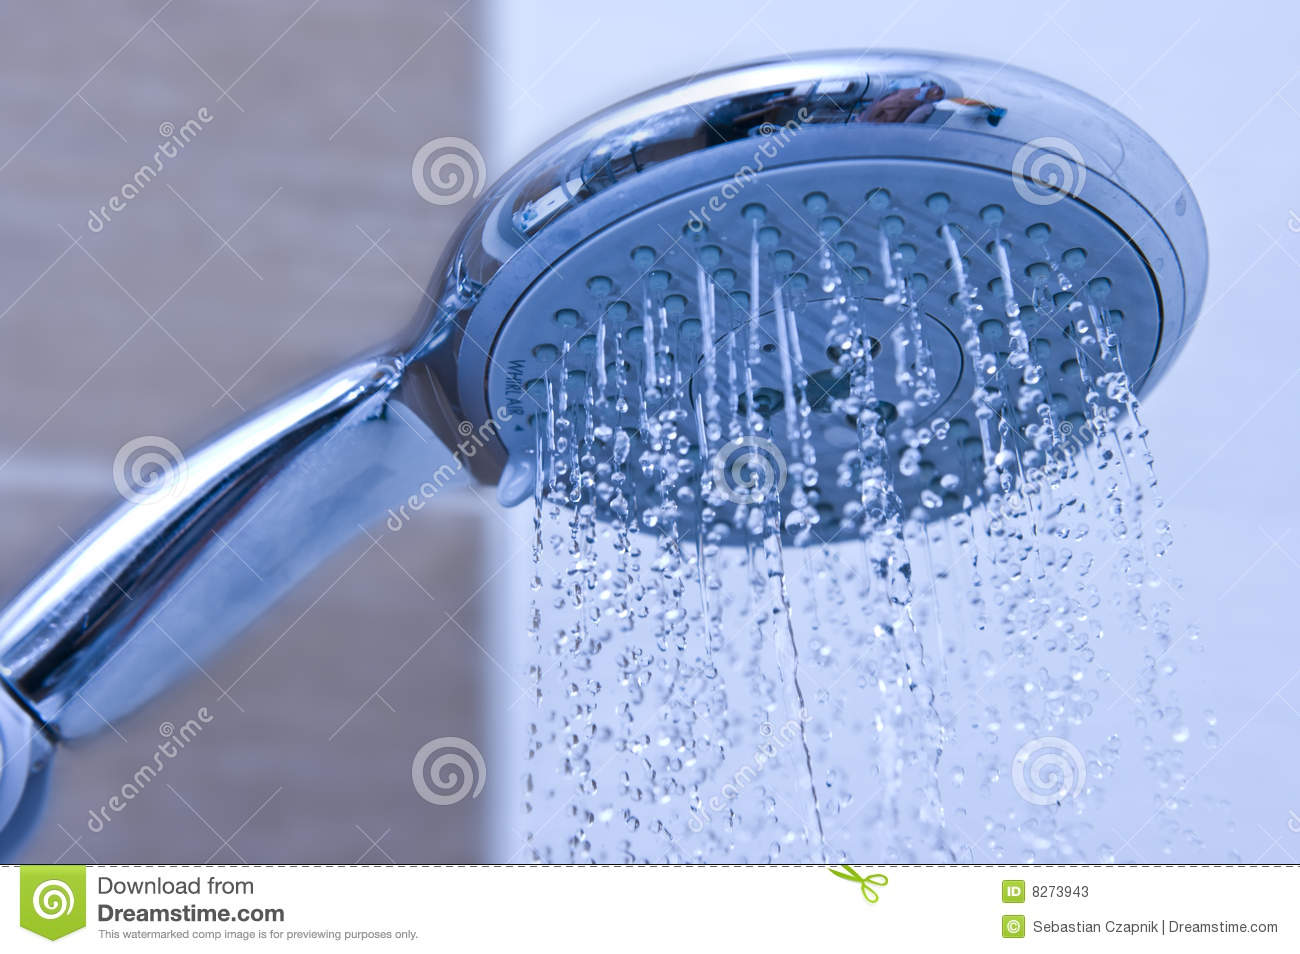 Blue shower head stock image. Image of closeup, droplet - 8273943